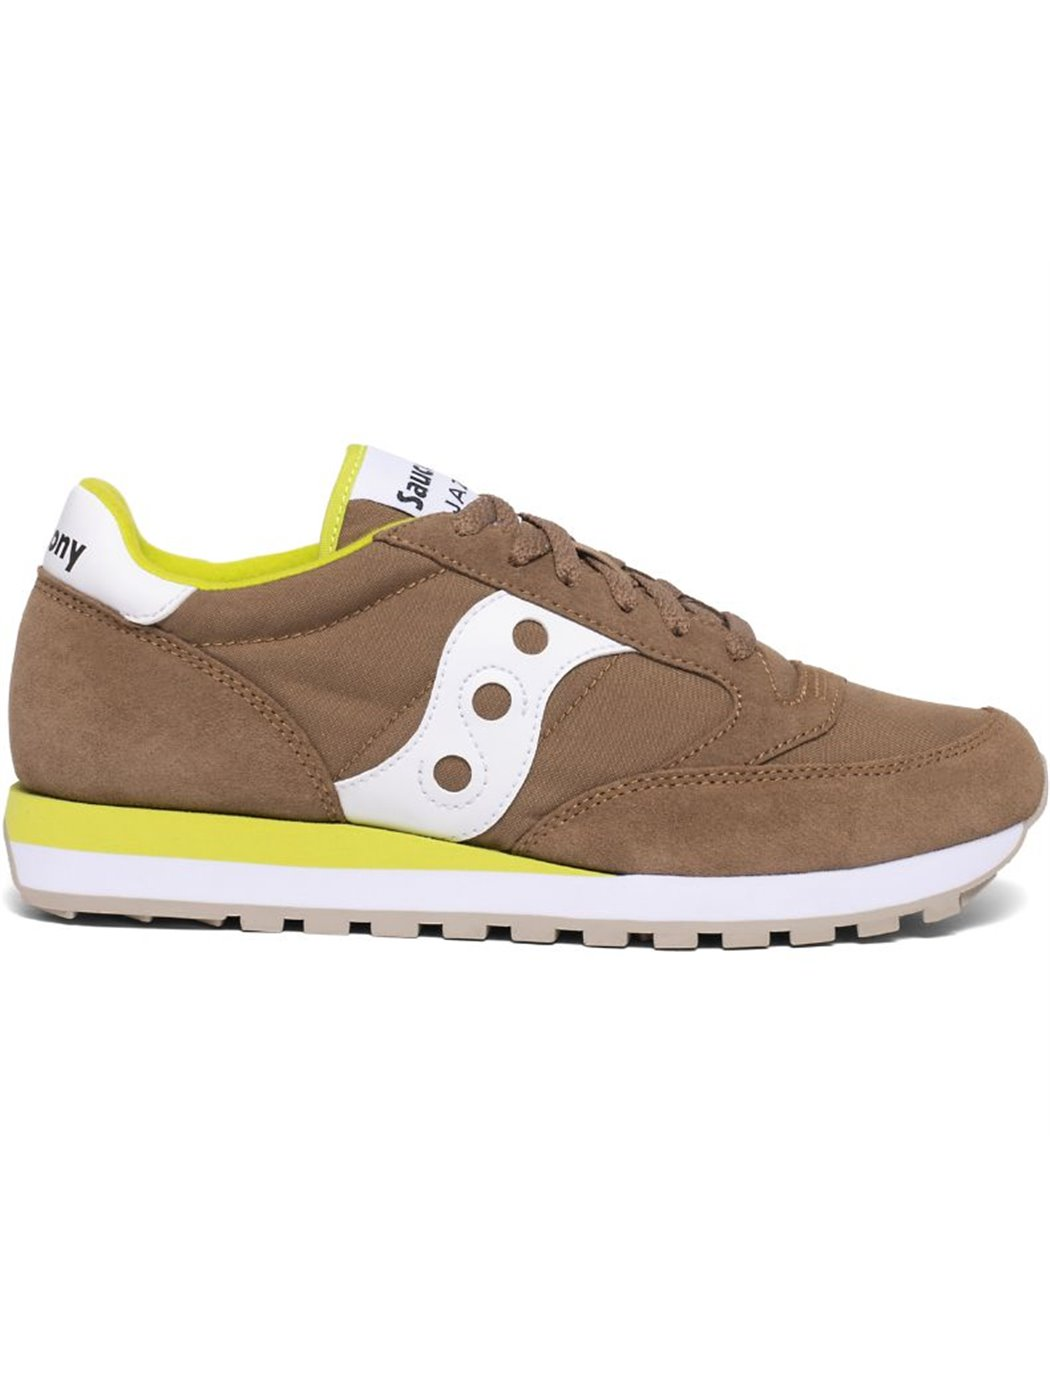 SAUCONY 2044-550 BROWN-GREE SNEAKERS